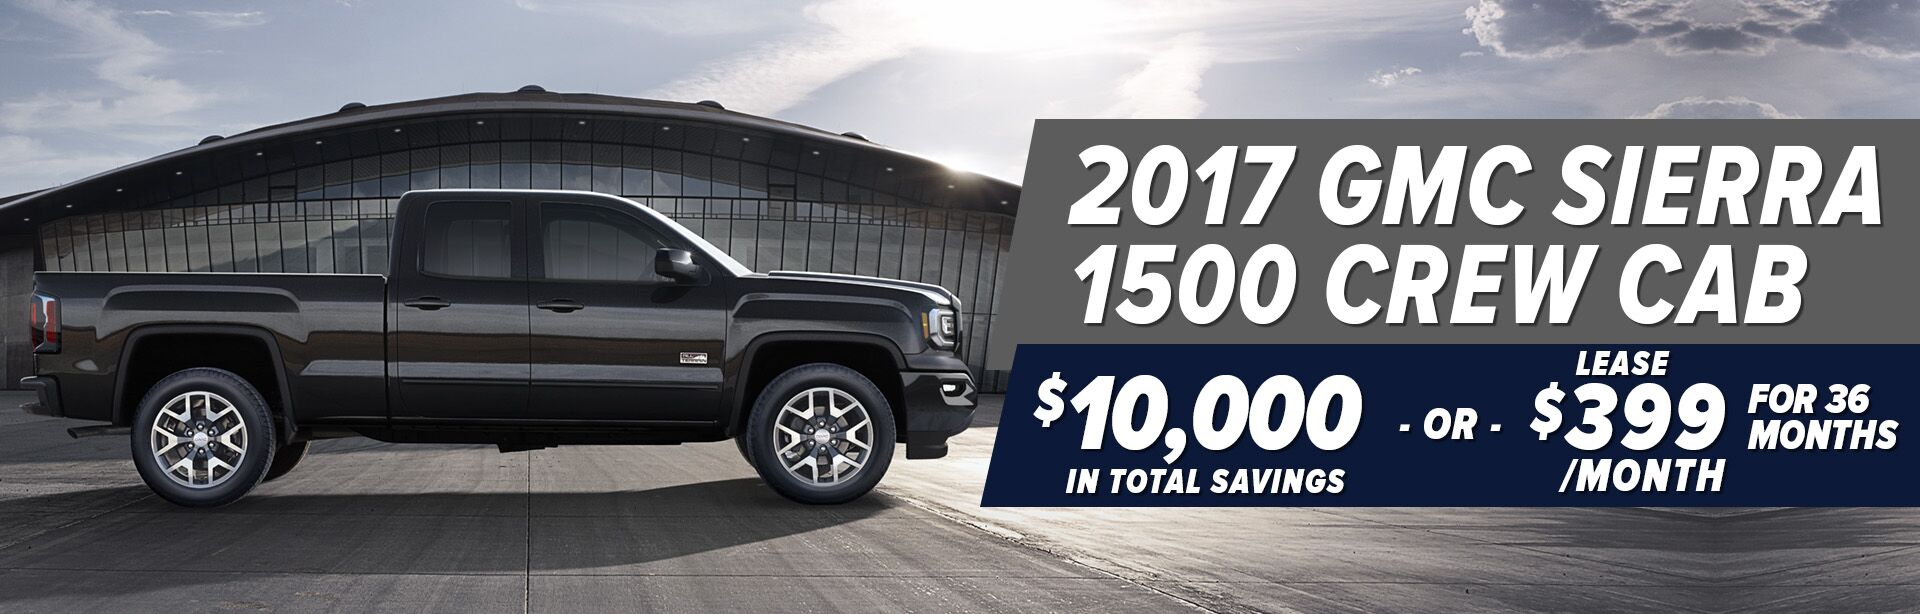 gmc sierra Commercial offers